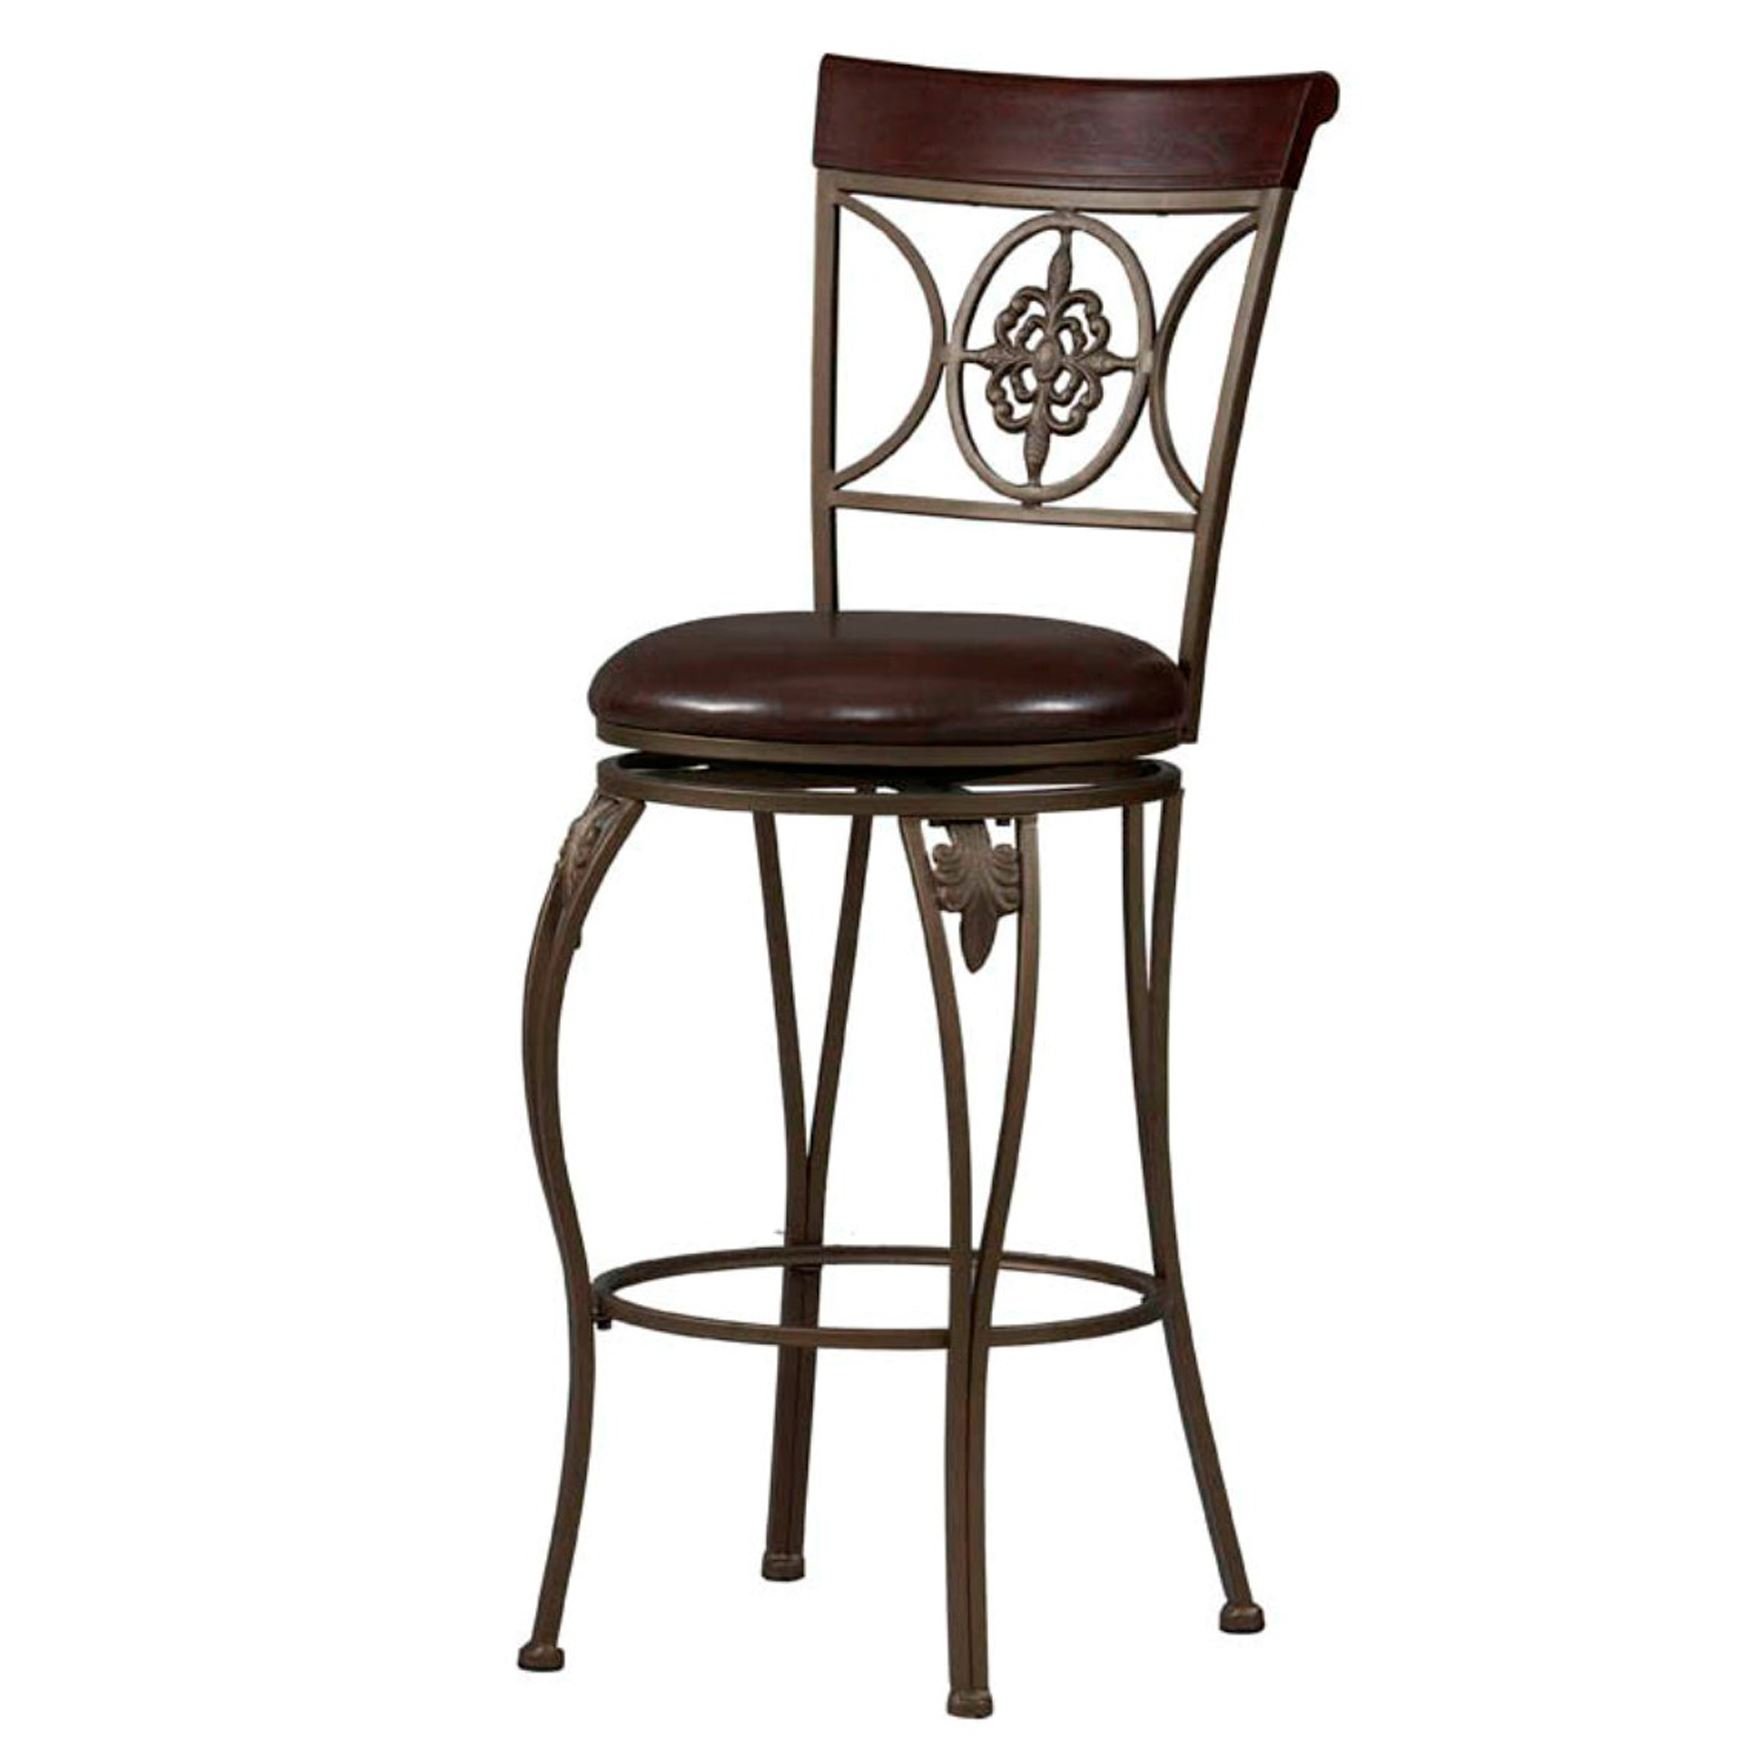 Fleur De Lis Counter & Bar Stool,